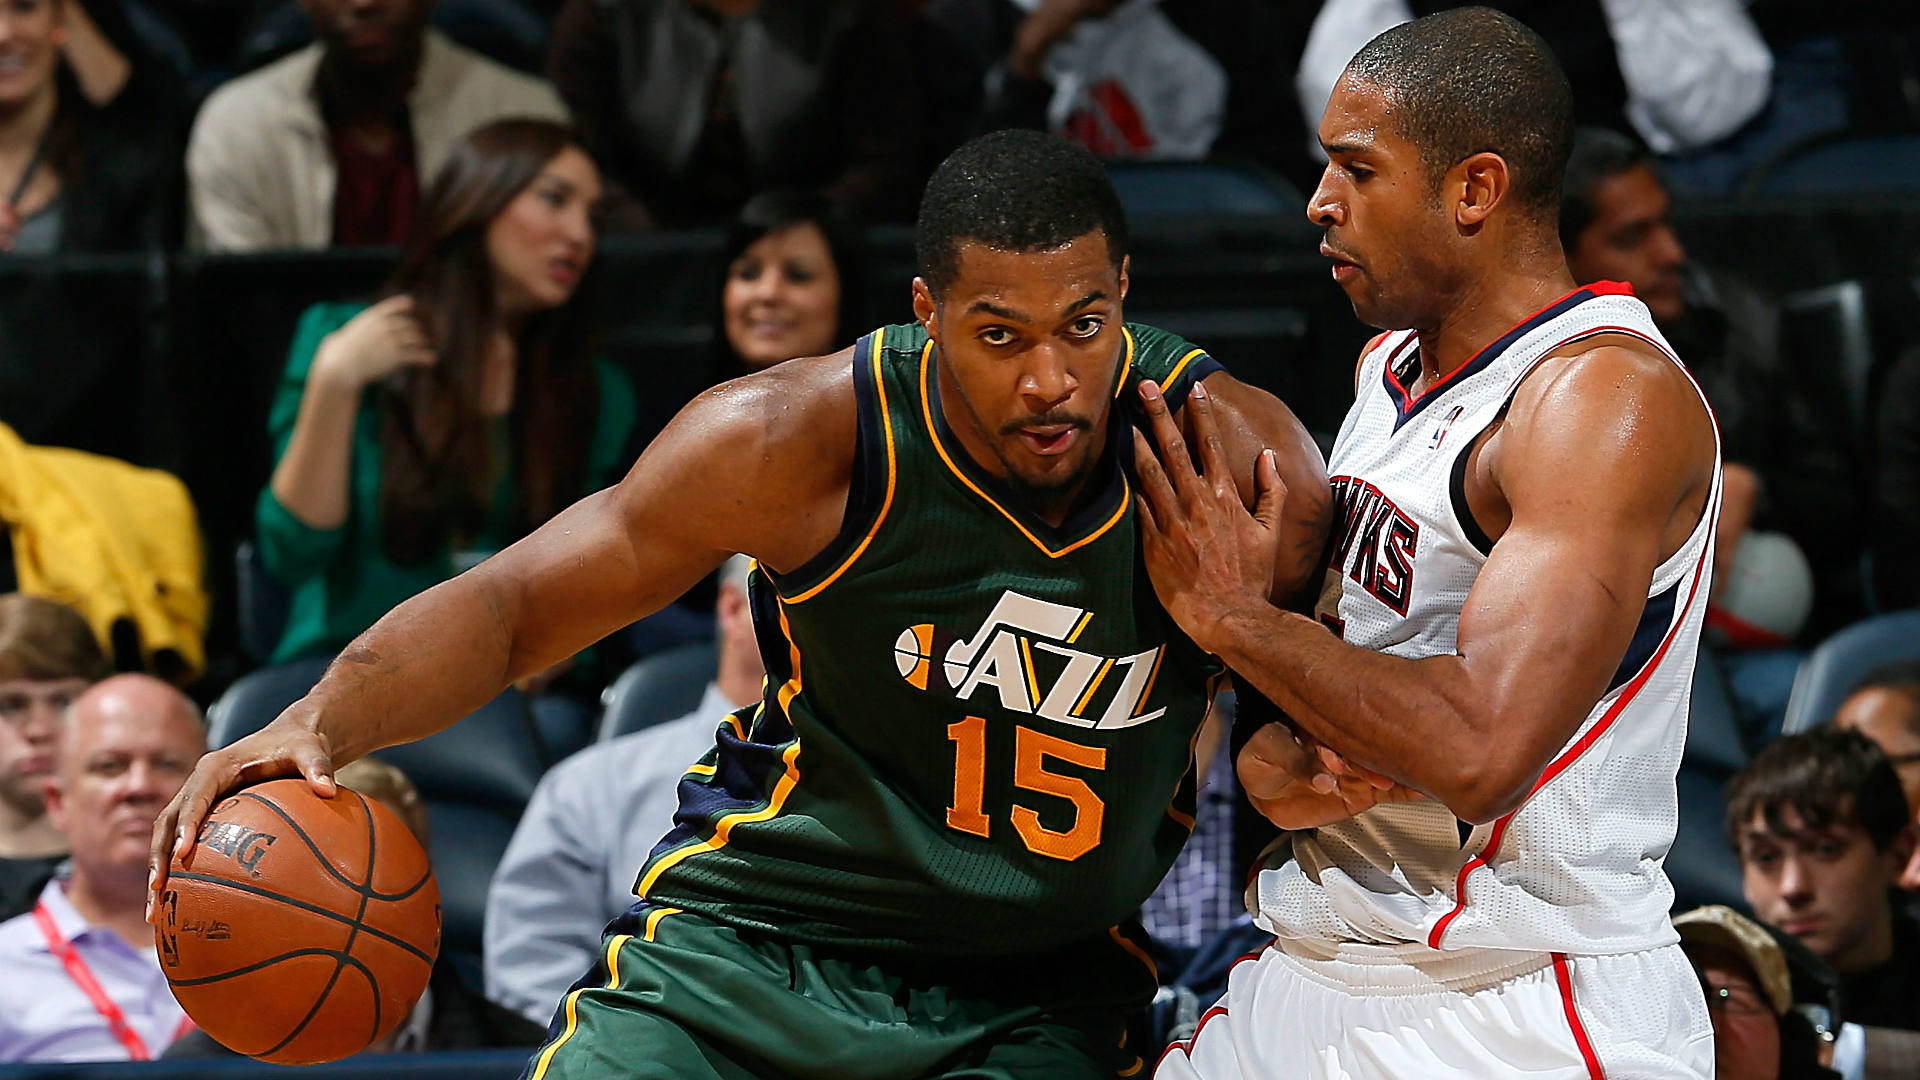 AccuScore's NBA pick of the day – Jazz at Grizzlies